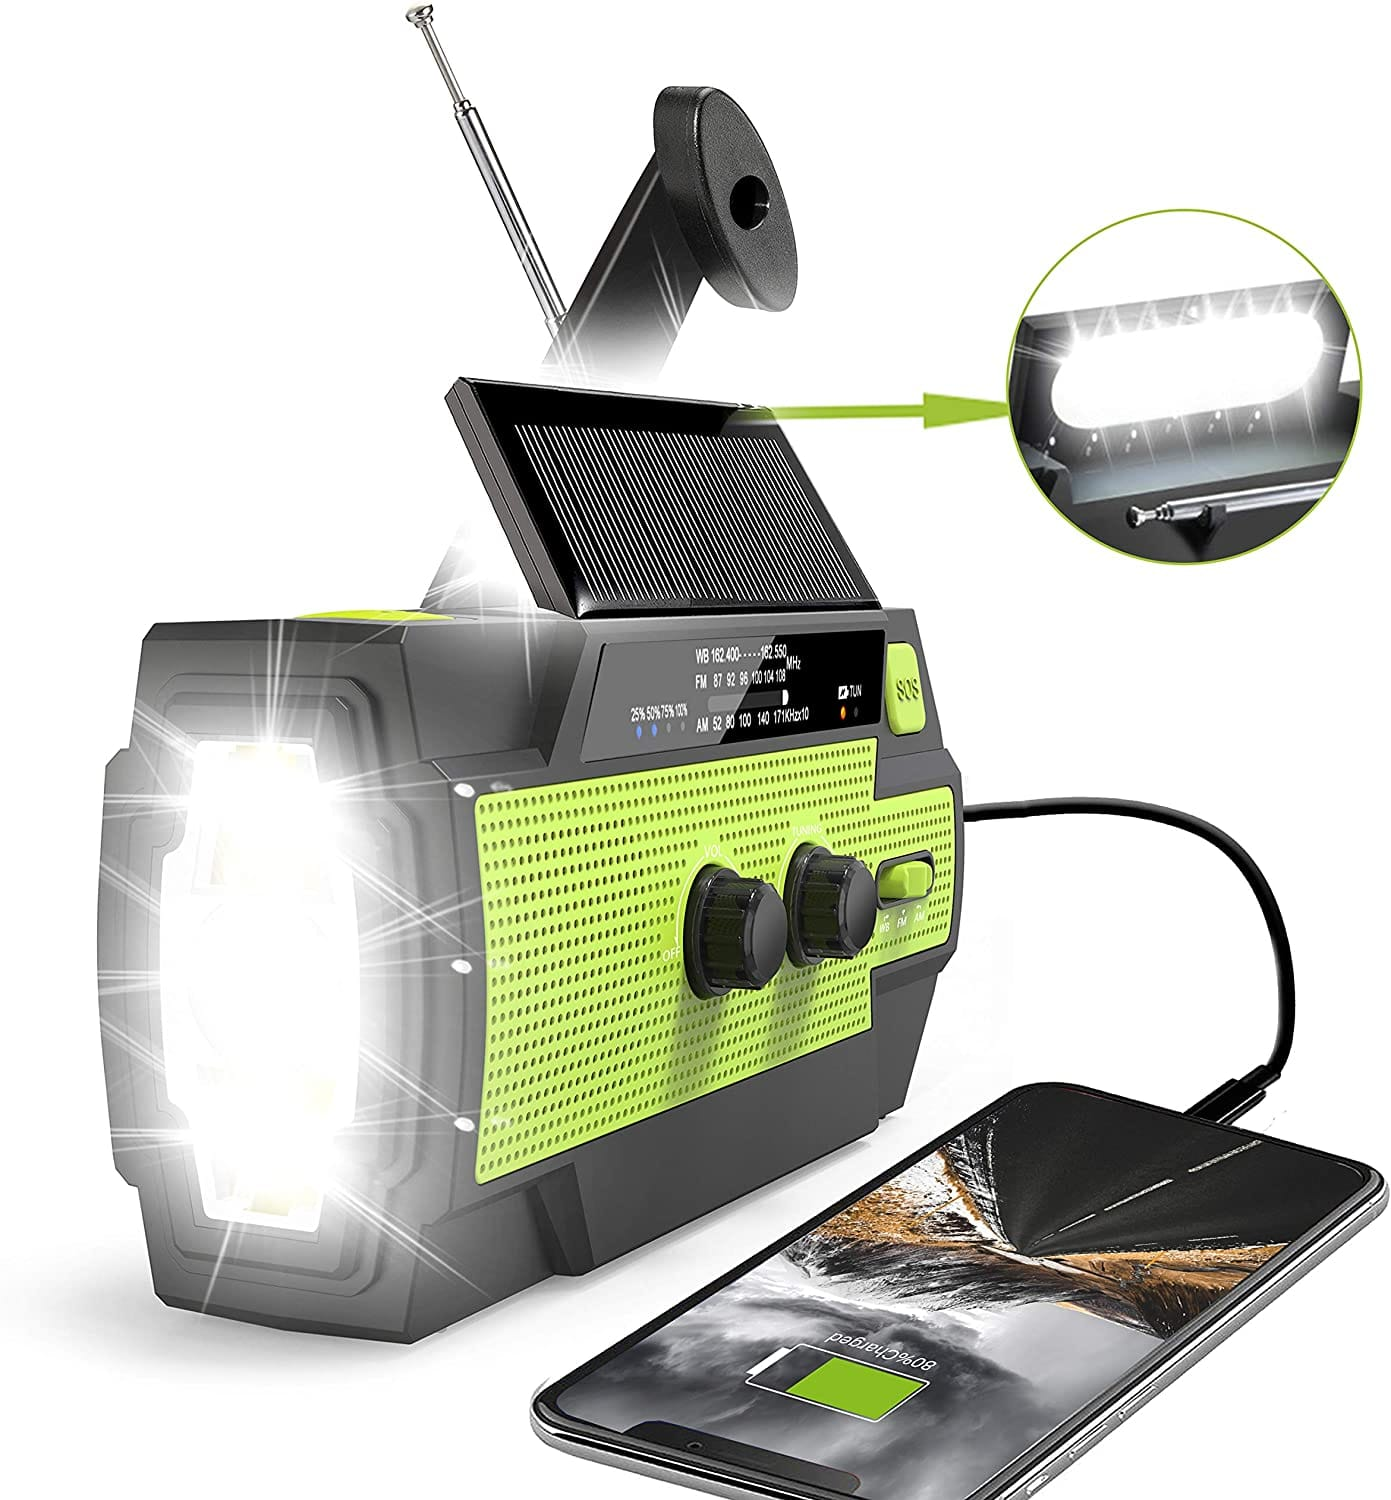 4000mAh Solar Hand Crank Weather Radio with Flashlight & Cell Phone Charger $18.95 + Free Shipping